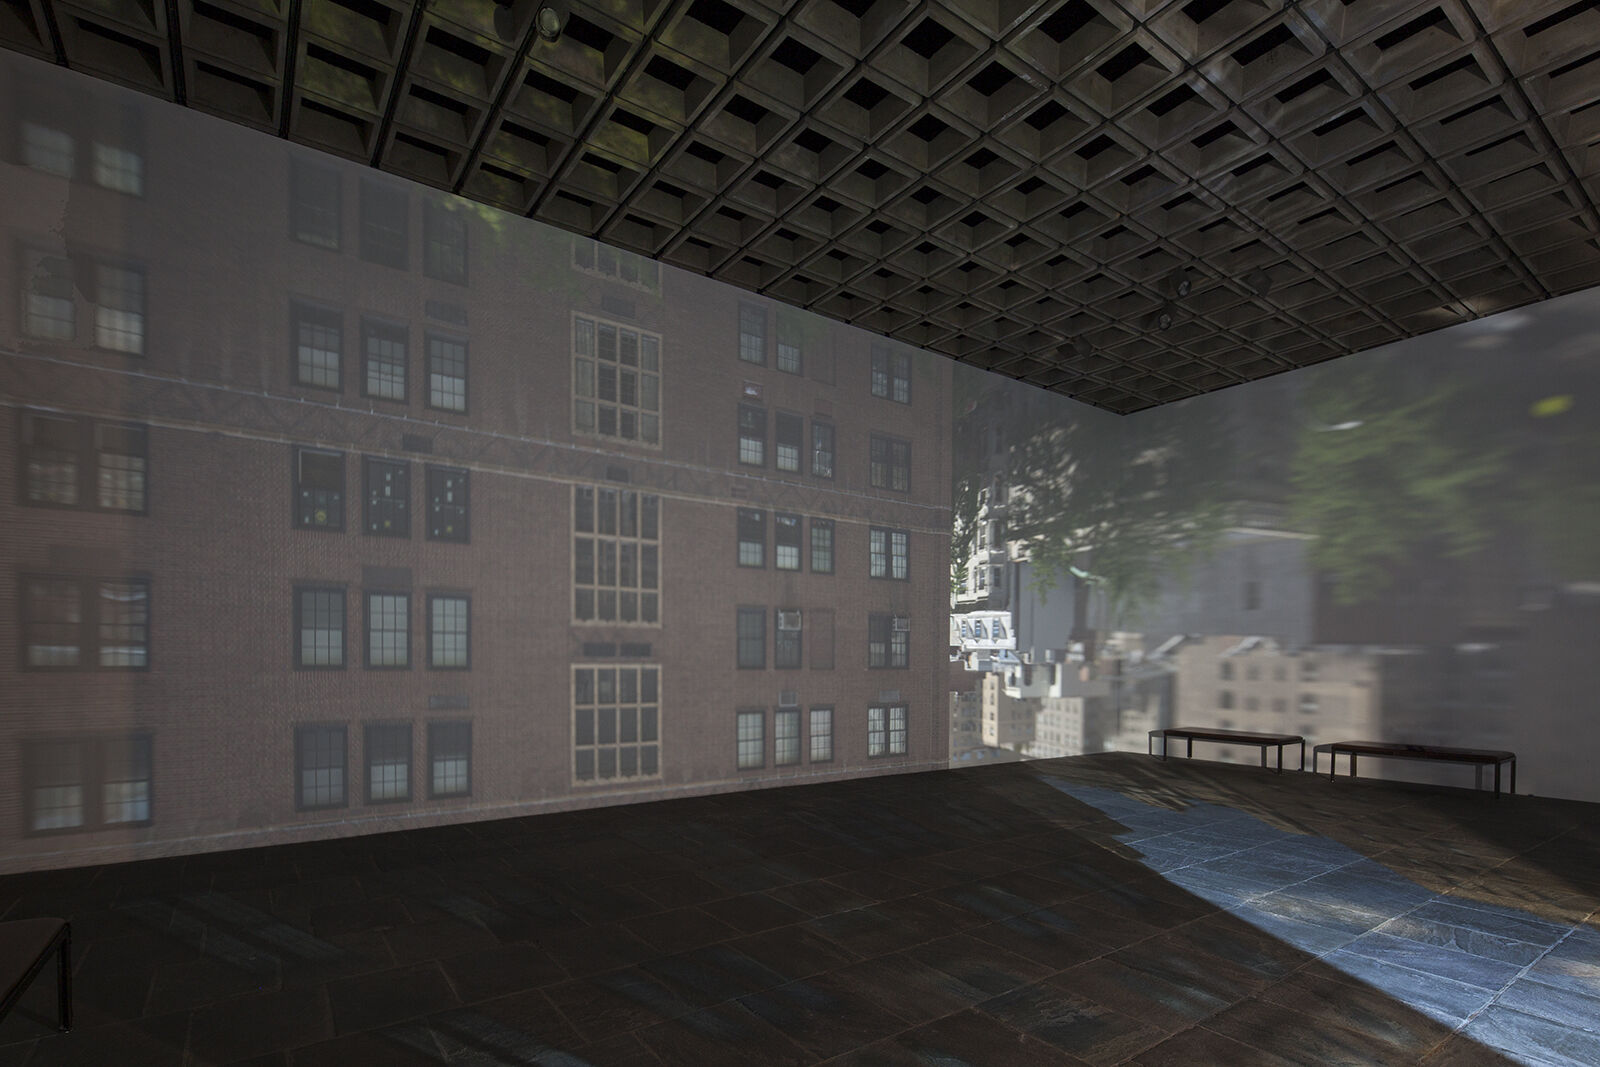 A gallery with walls showing an upside down view of a street.